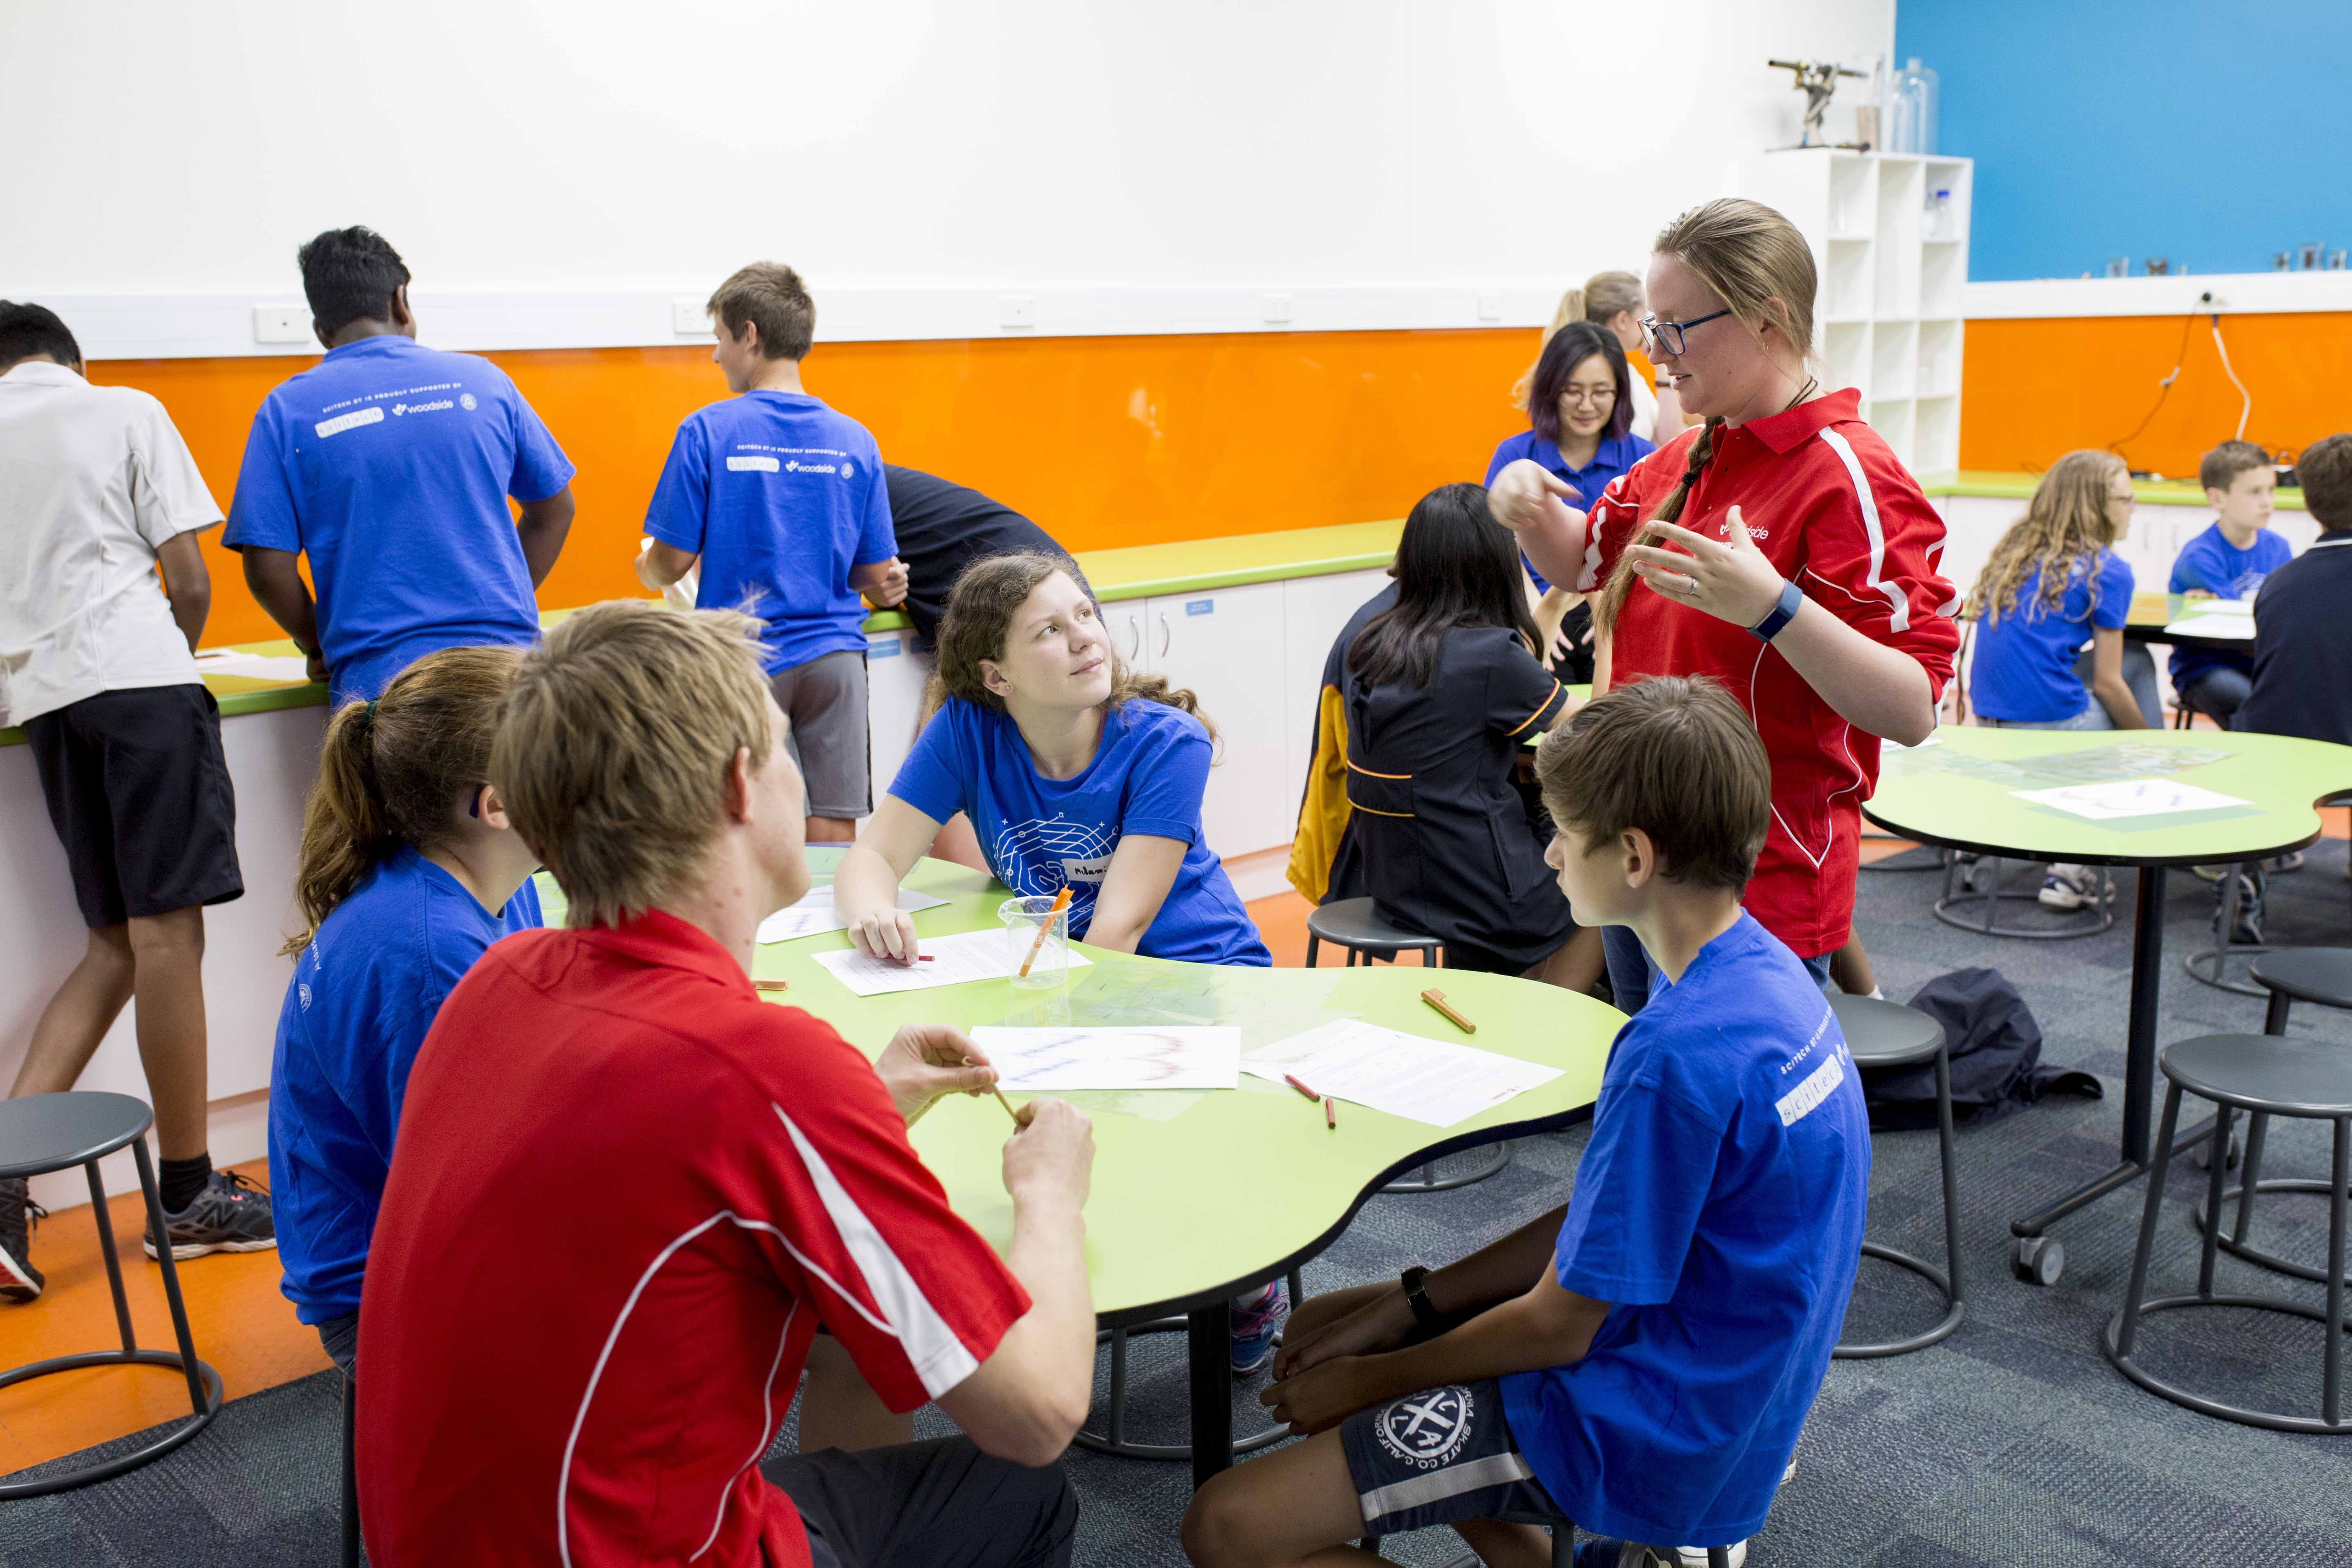 A group shot of students in the Scitech gifted and talented program discussing ideas